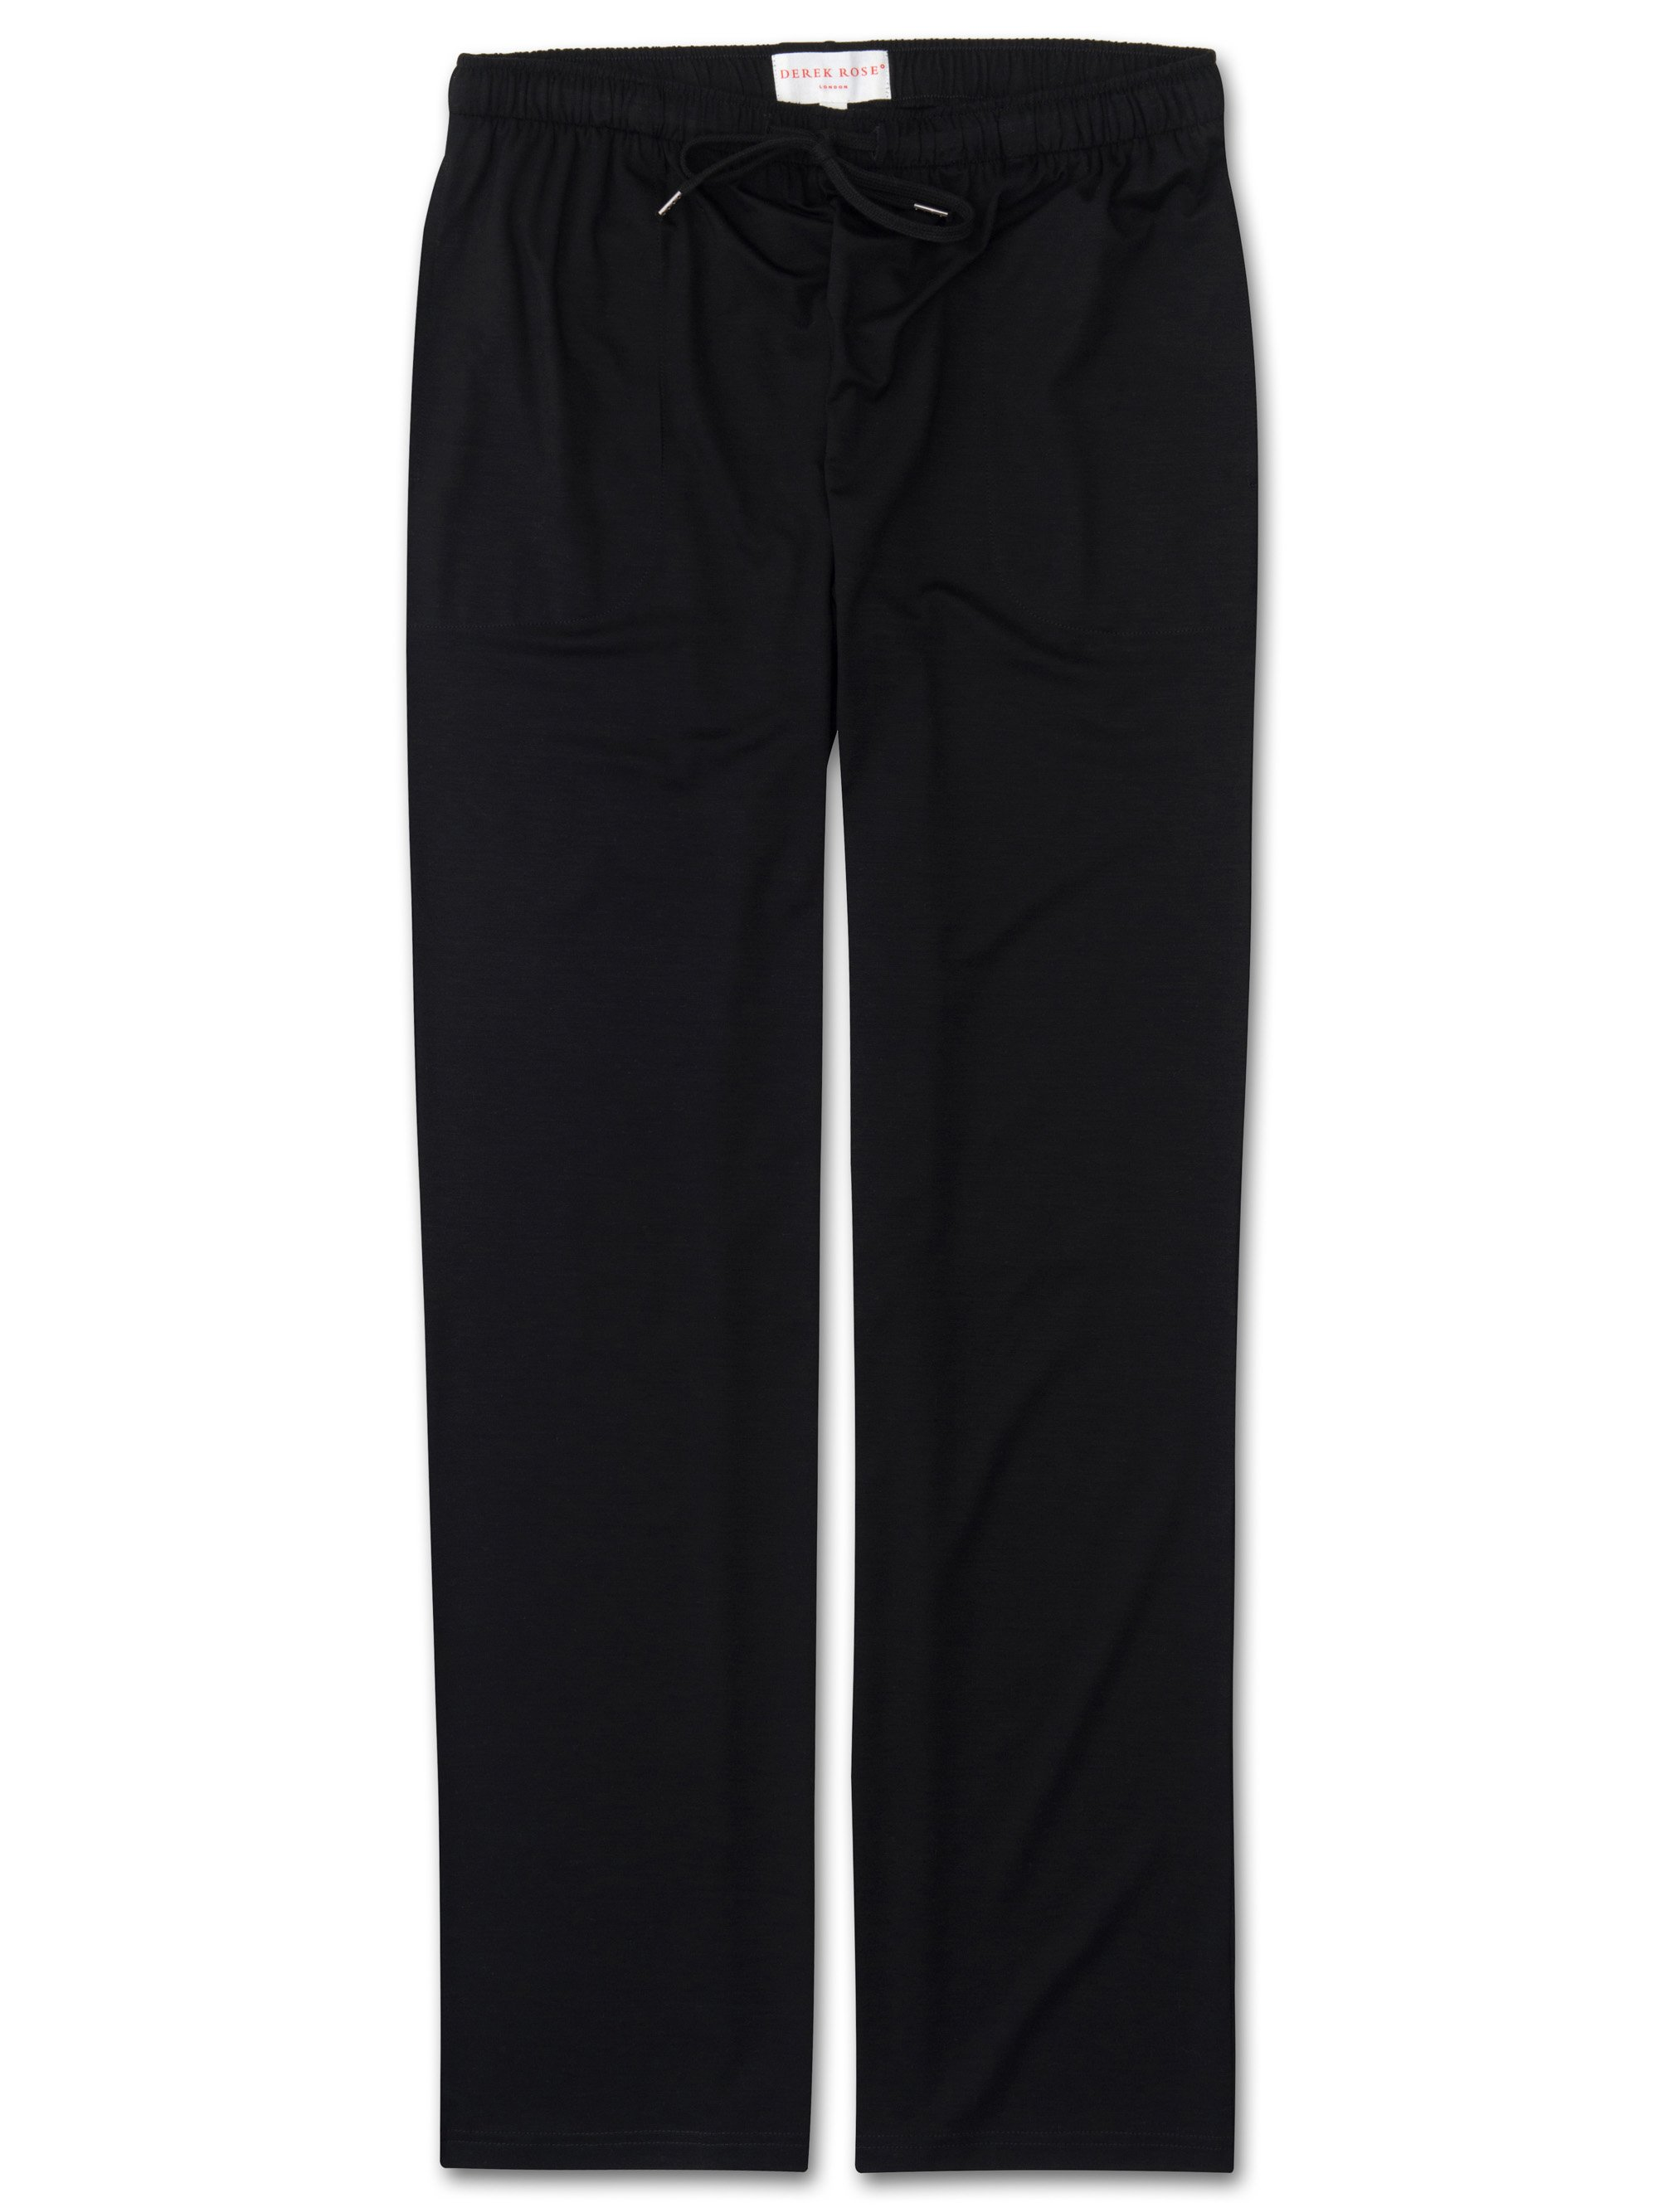 Men's Jersey Trousers Basel Micro Modal Stretch Black